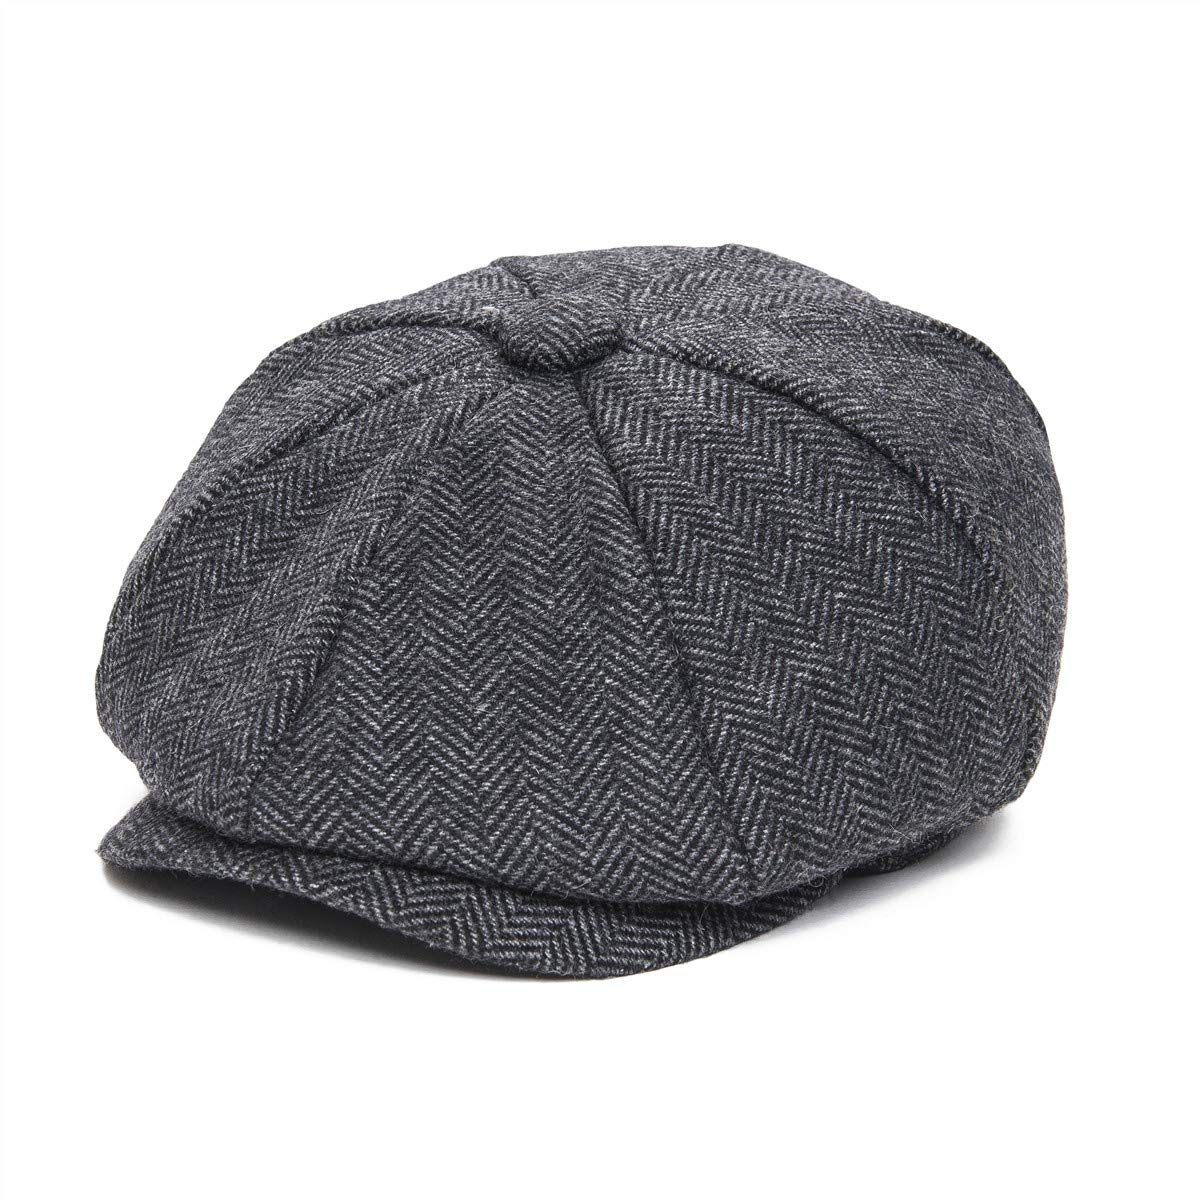 12cb2ff77d4 Amazon.com  JANGOUL Boys Vintage Newsboy Cap Tweed Flat Beret Cabbie Hat  for Kids Toddler Pageboy (50cm(12-24 Months)